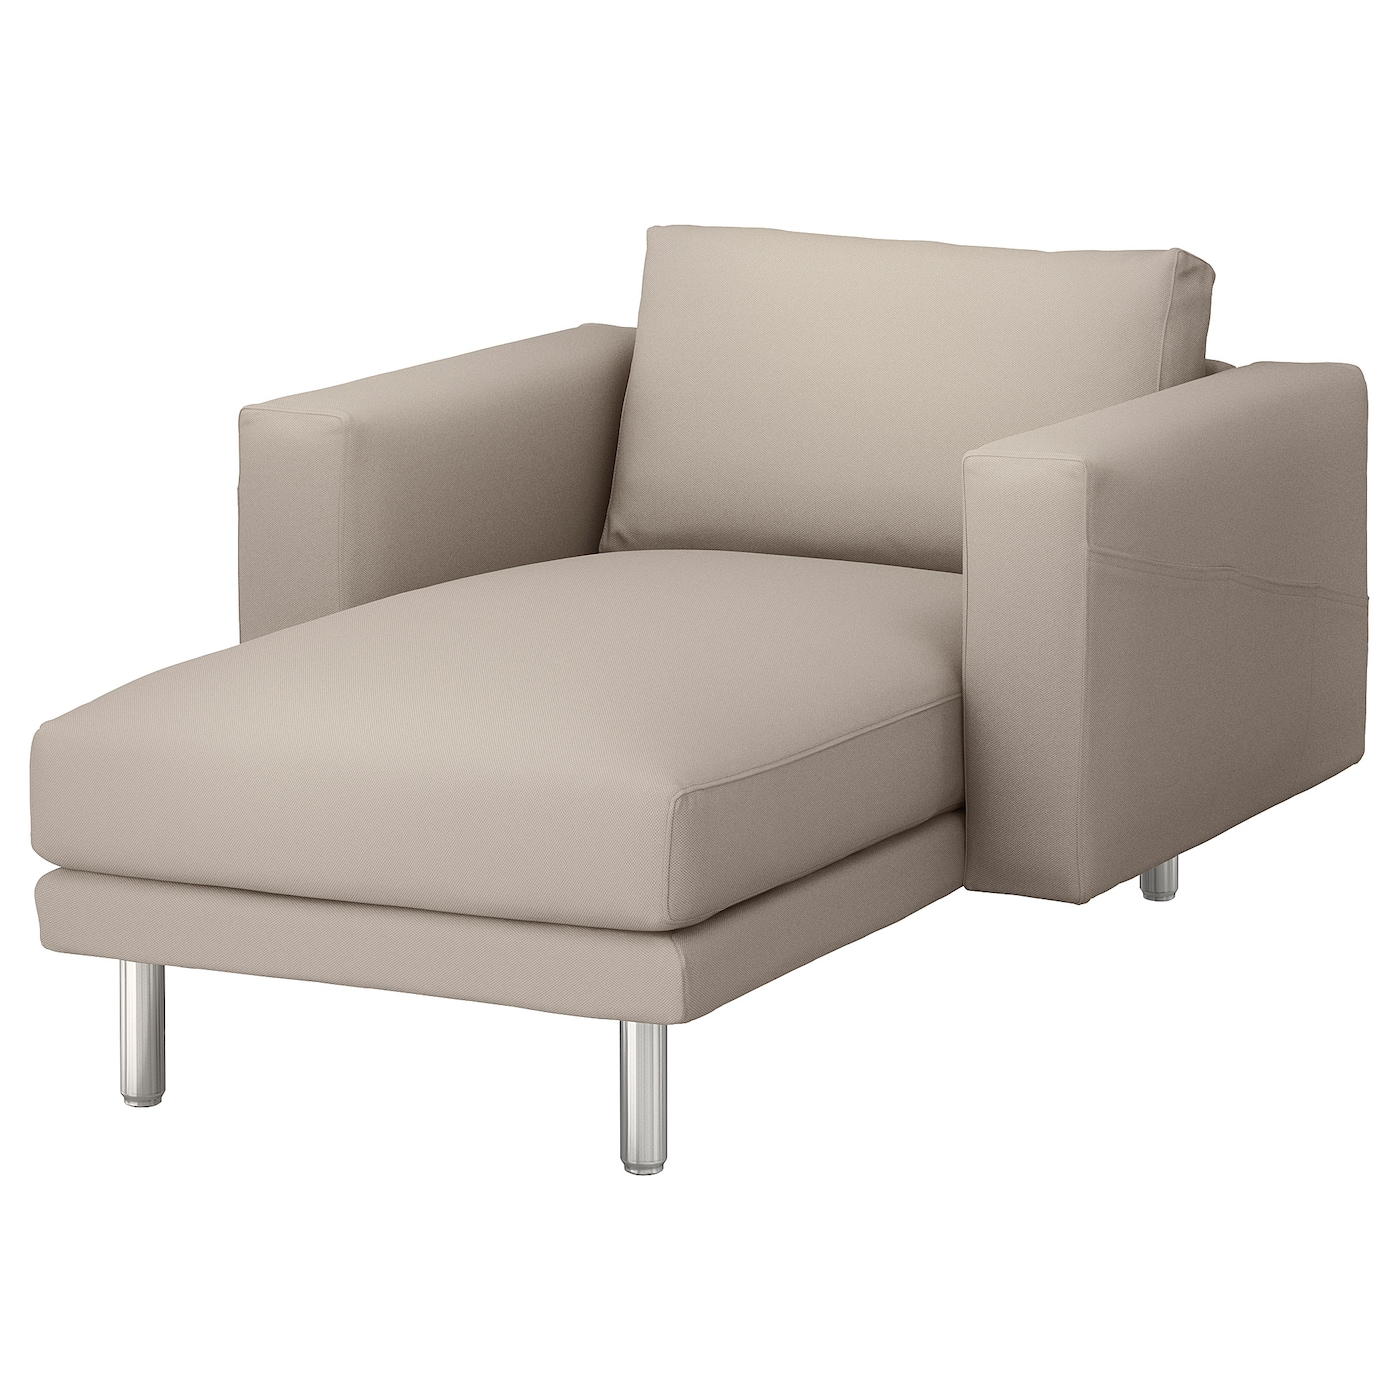 Ikea sofa with chaise kivik 3 seat sofa with chaise longue for Chaises transparentes ikea